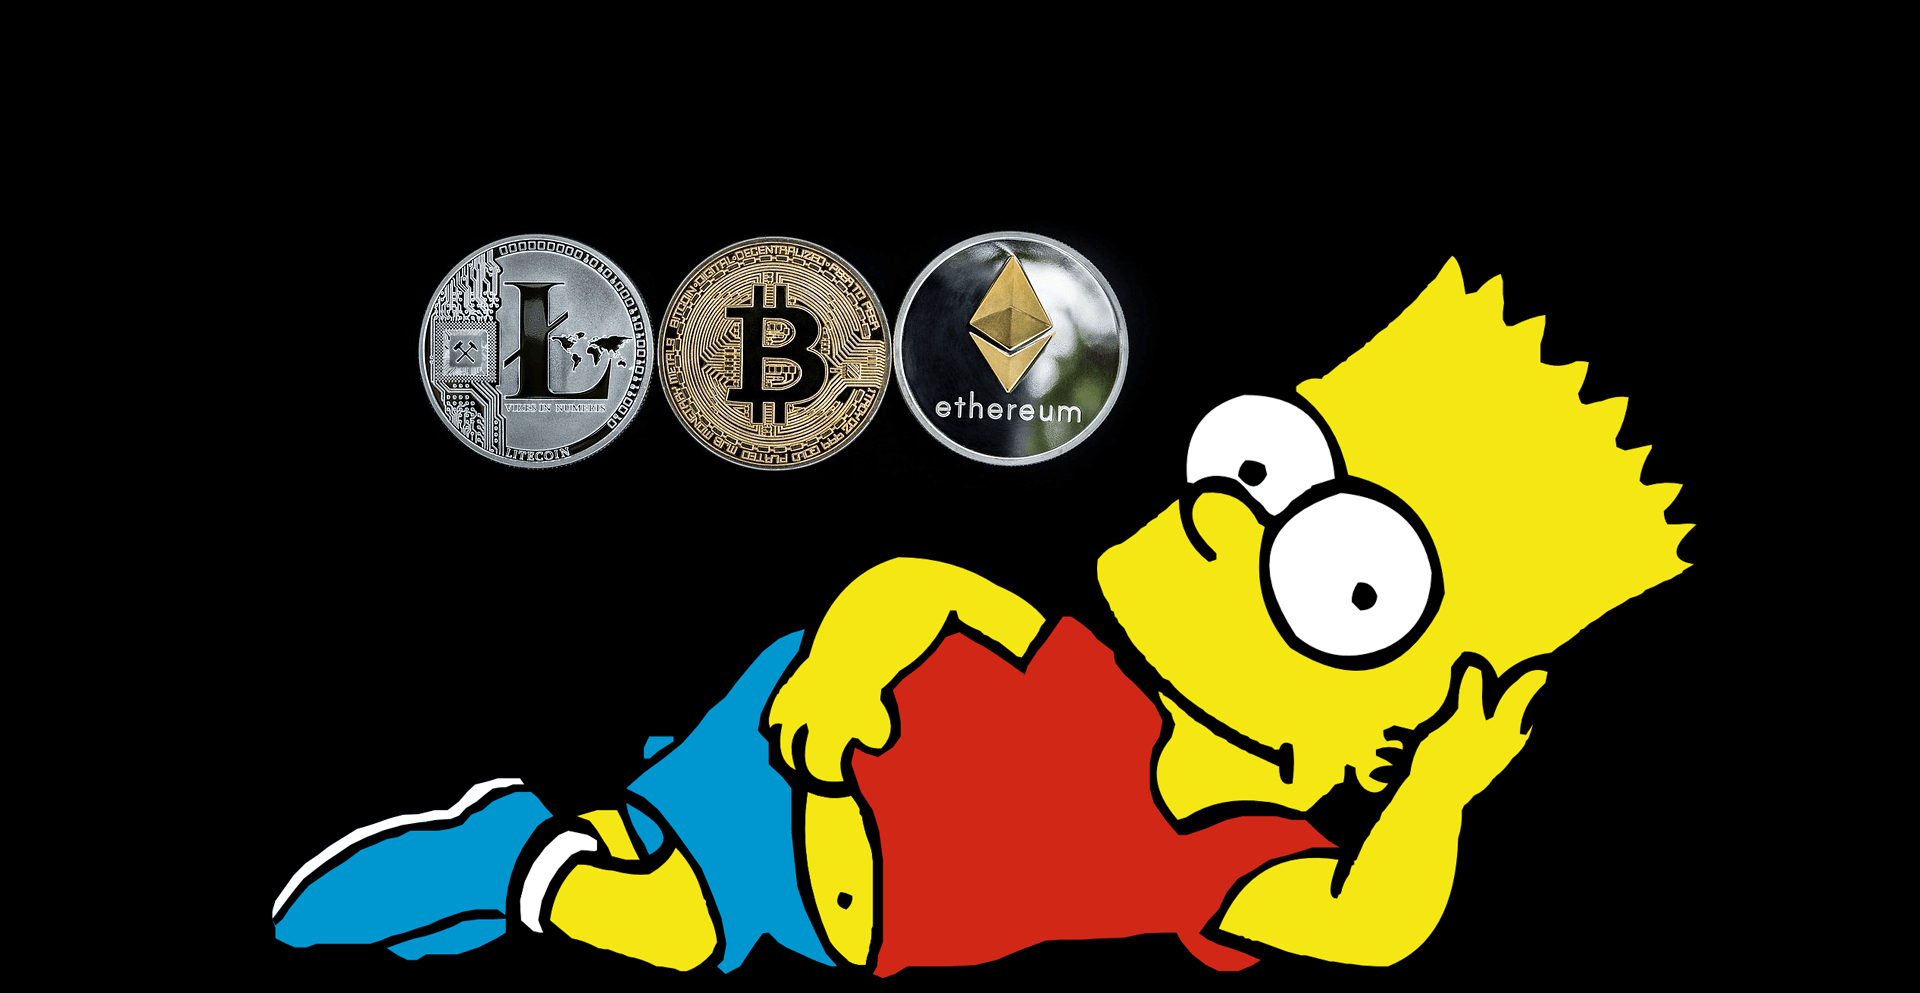 simpons cryptocurrency show